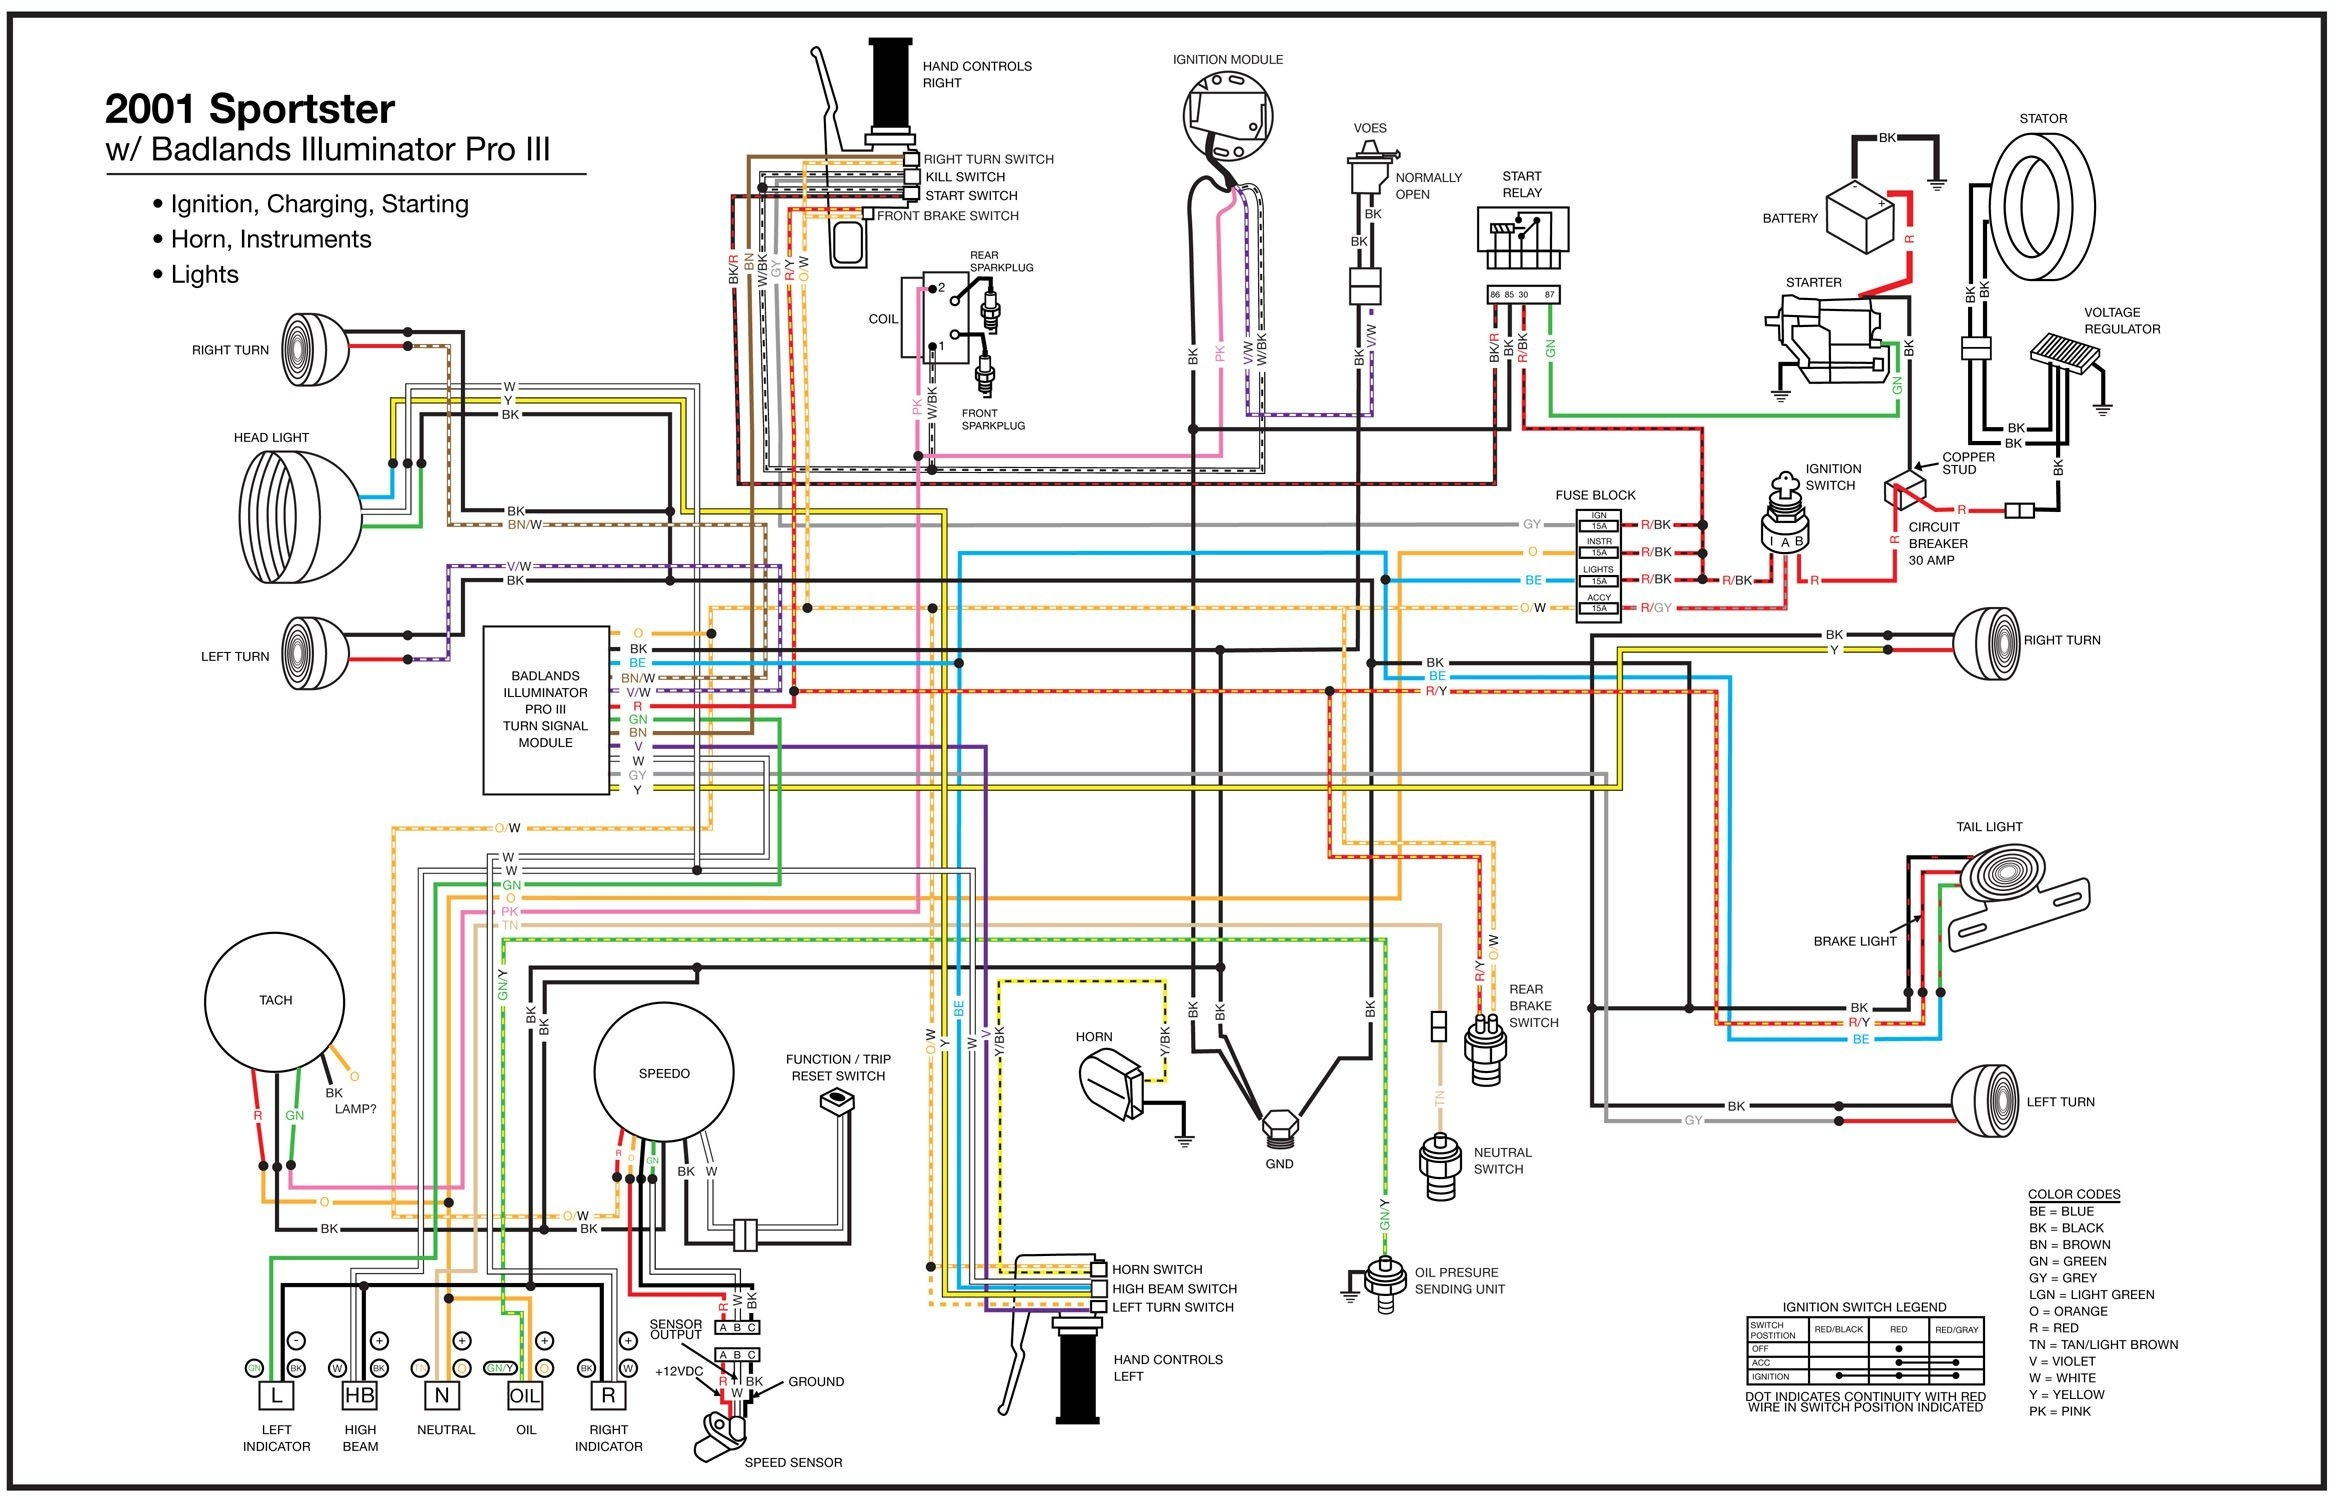 harley turn signal wiring diagram Download-Harley Turn Signal Wiring Diagram Inspirational Magnificent Harley 13-o